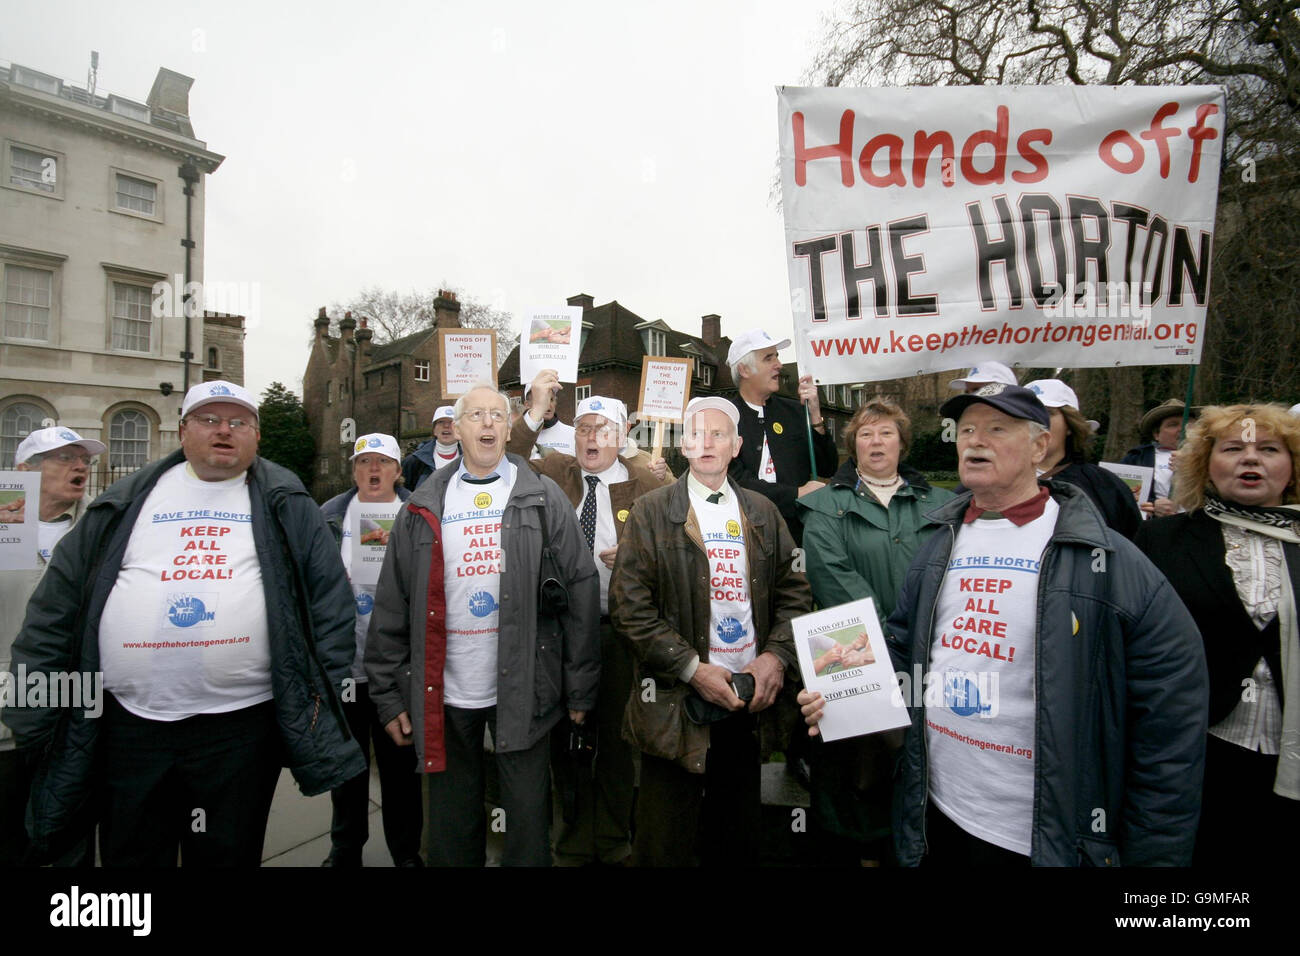 Hospital closures protest - Stock Image